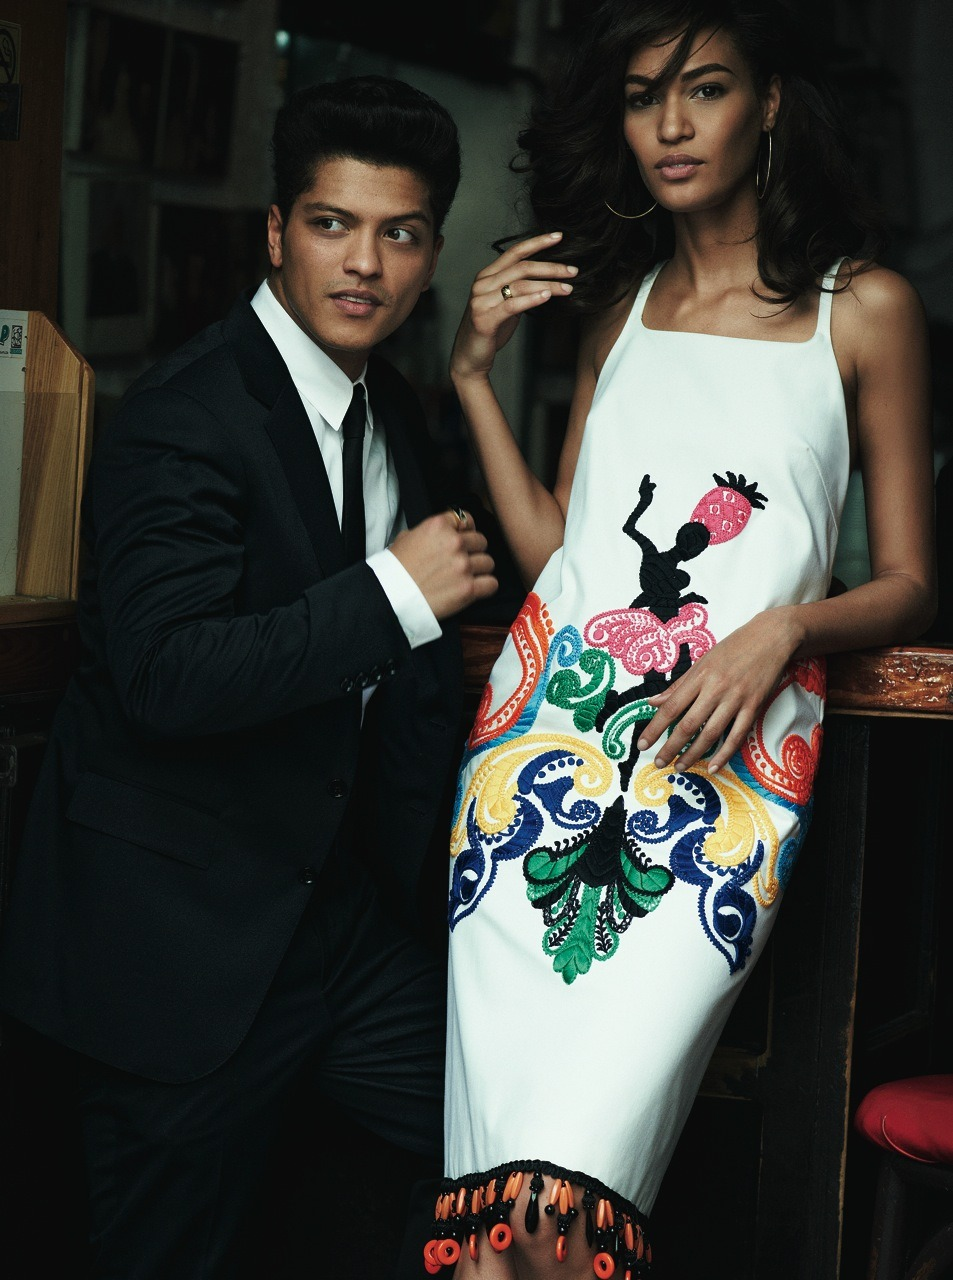 Bruno Mars and Joan Smalls Photographed by Peter Lindbergh for the June Issue of Vogue